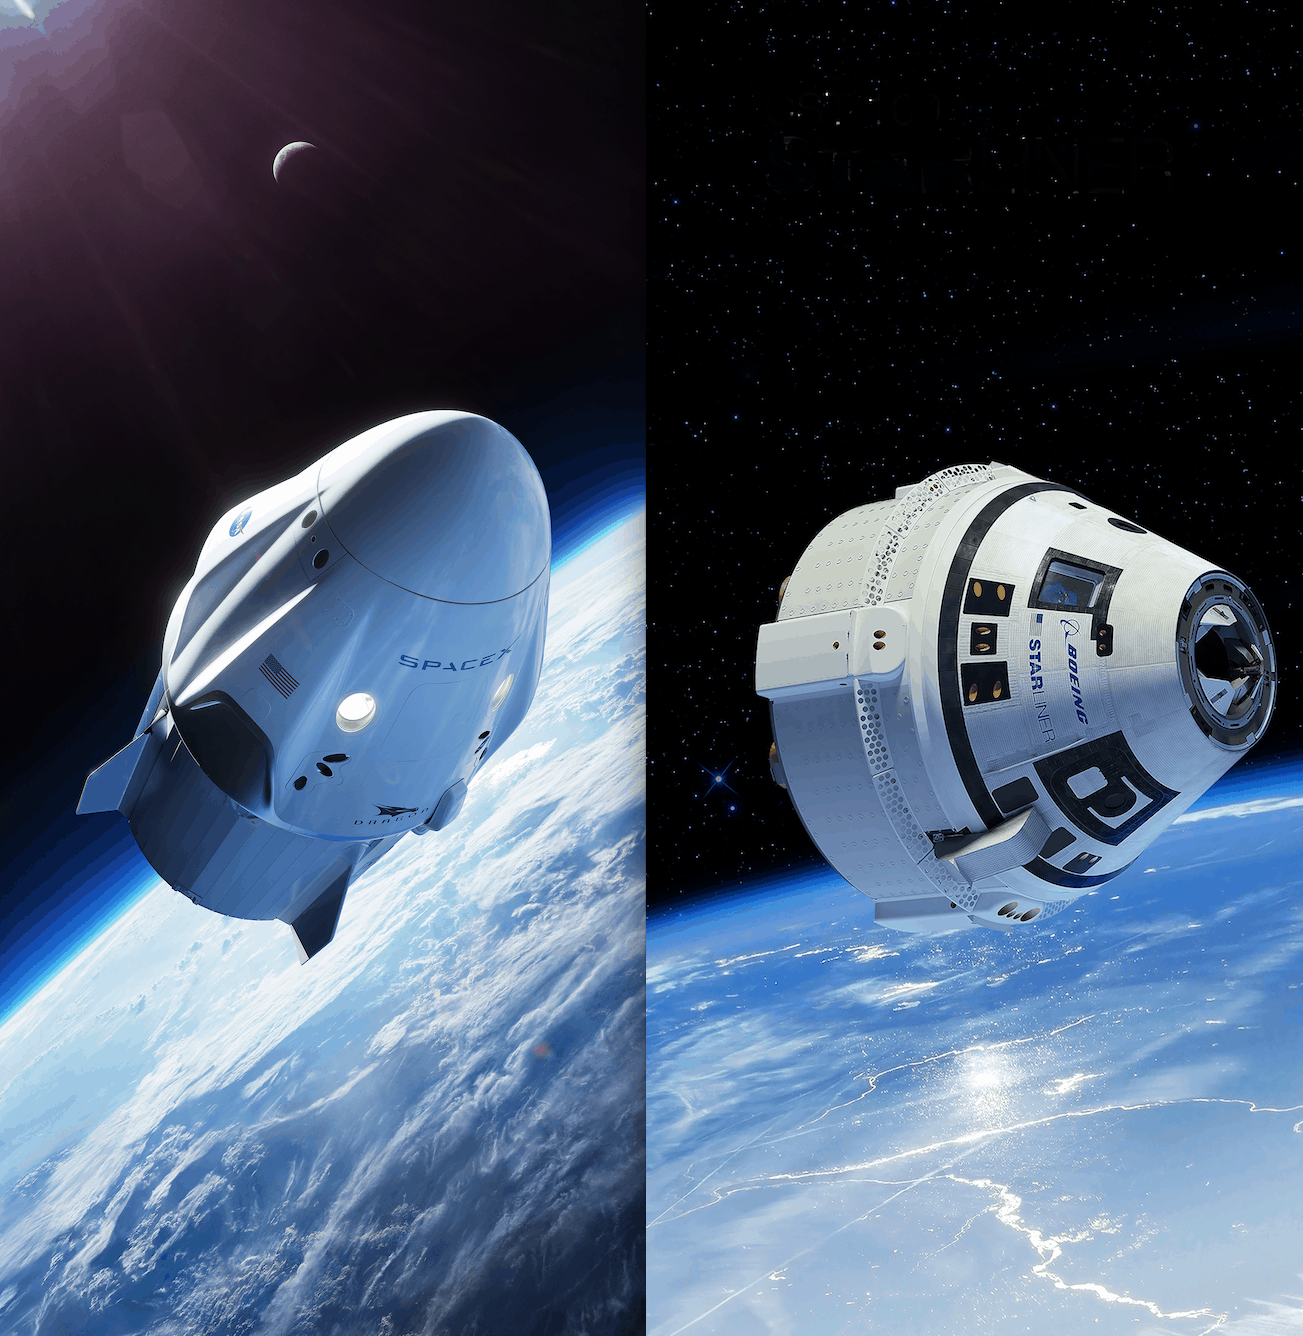 Side by side comparison of Crew Dragon and Starliner